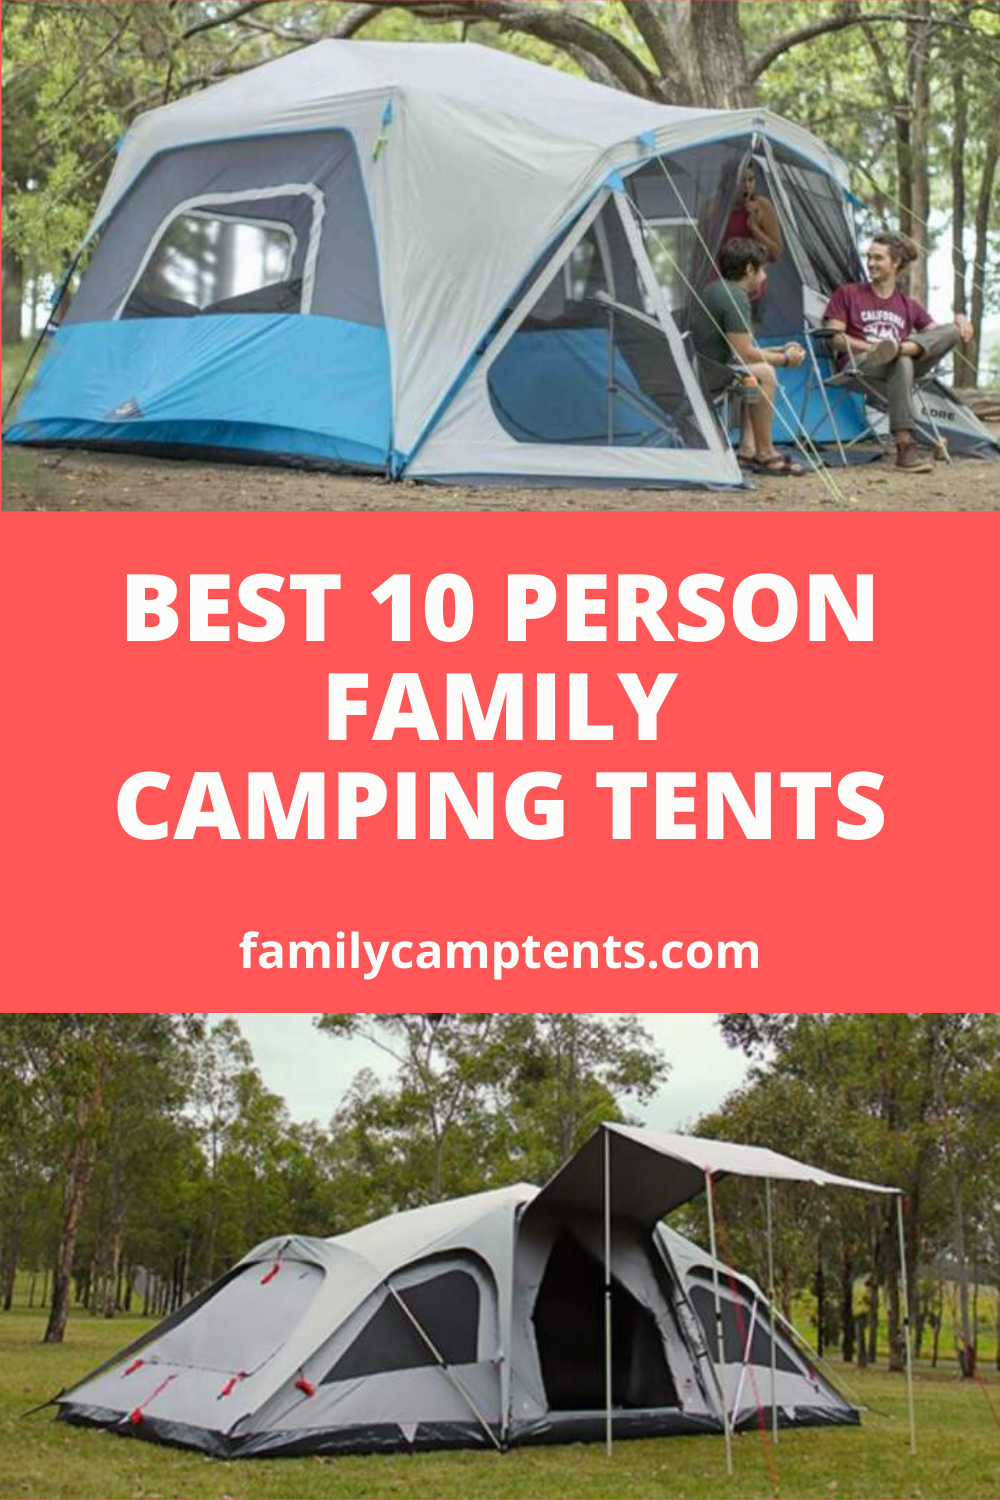 29 Best 10 Person Camping Tents For Families Groups In 2020 In 2020 Family Tent Camping Tent Tent Camping